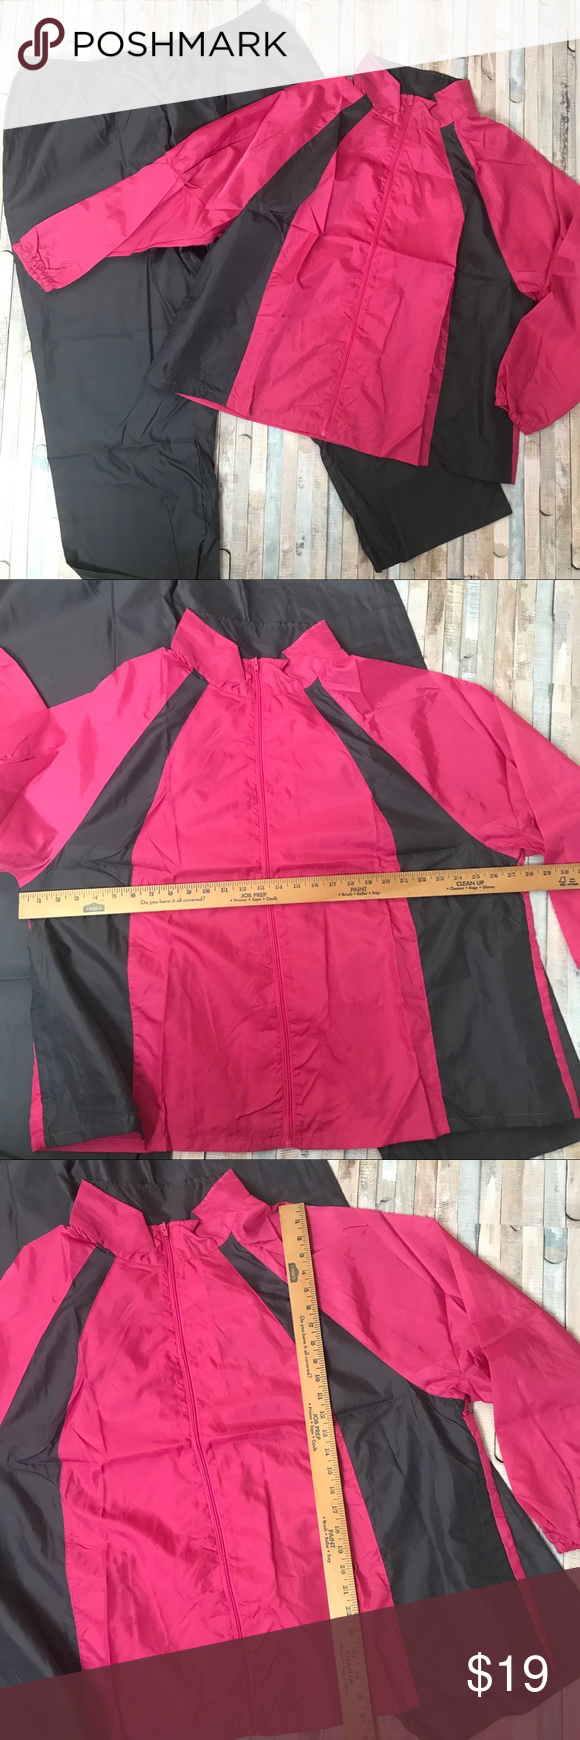 New Pink Gray Track Suit Paragon Plus 3X New Paragon track